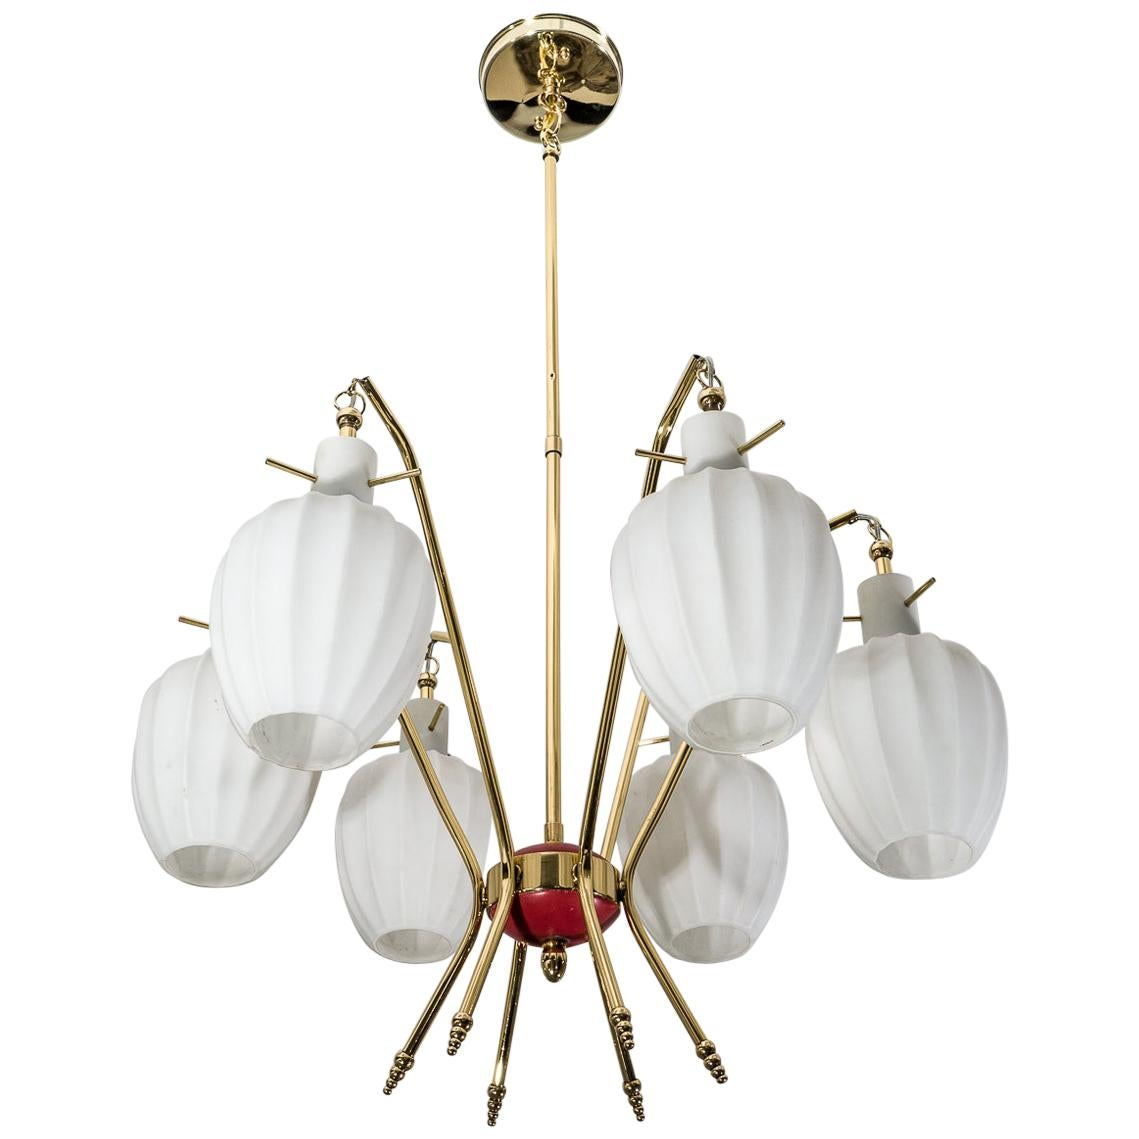 Stilnovo Style Chandelier in Brass and Murano Glass